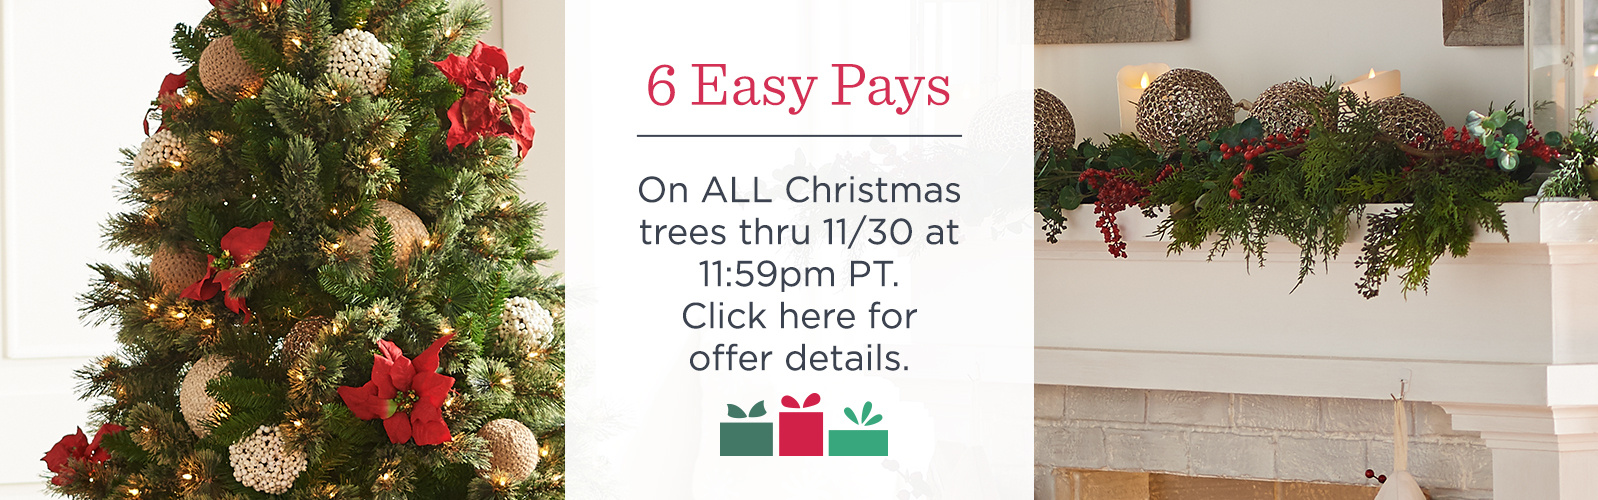 6 easy pays on all christmas trees thru 1130 at 1159pm